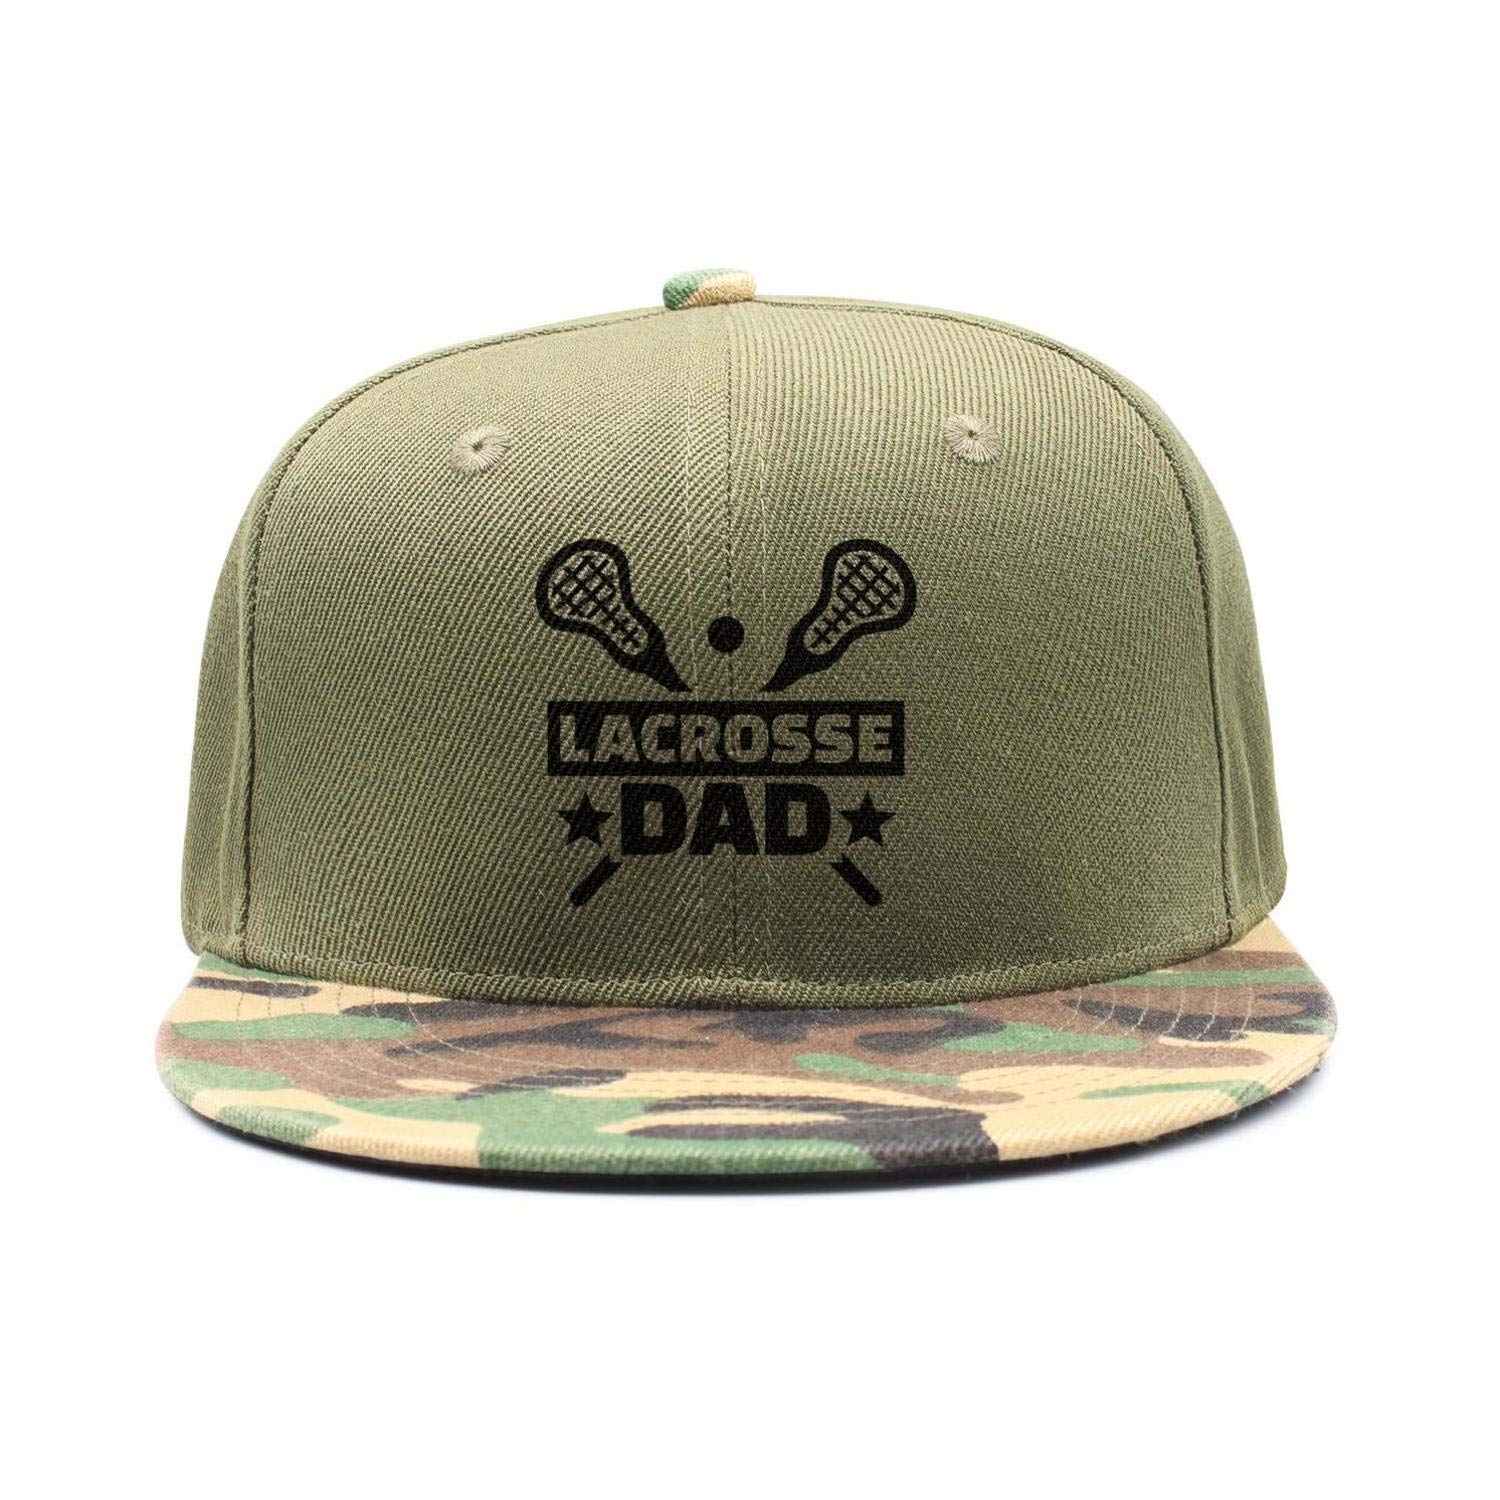 YHNBHI Lacrosse Dad Woman Mens Hip-Hop Adjustable Cricket Cap Army-Green  Baseball Hats at Amazon Men s Clothing store  e4c5bf5b8253